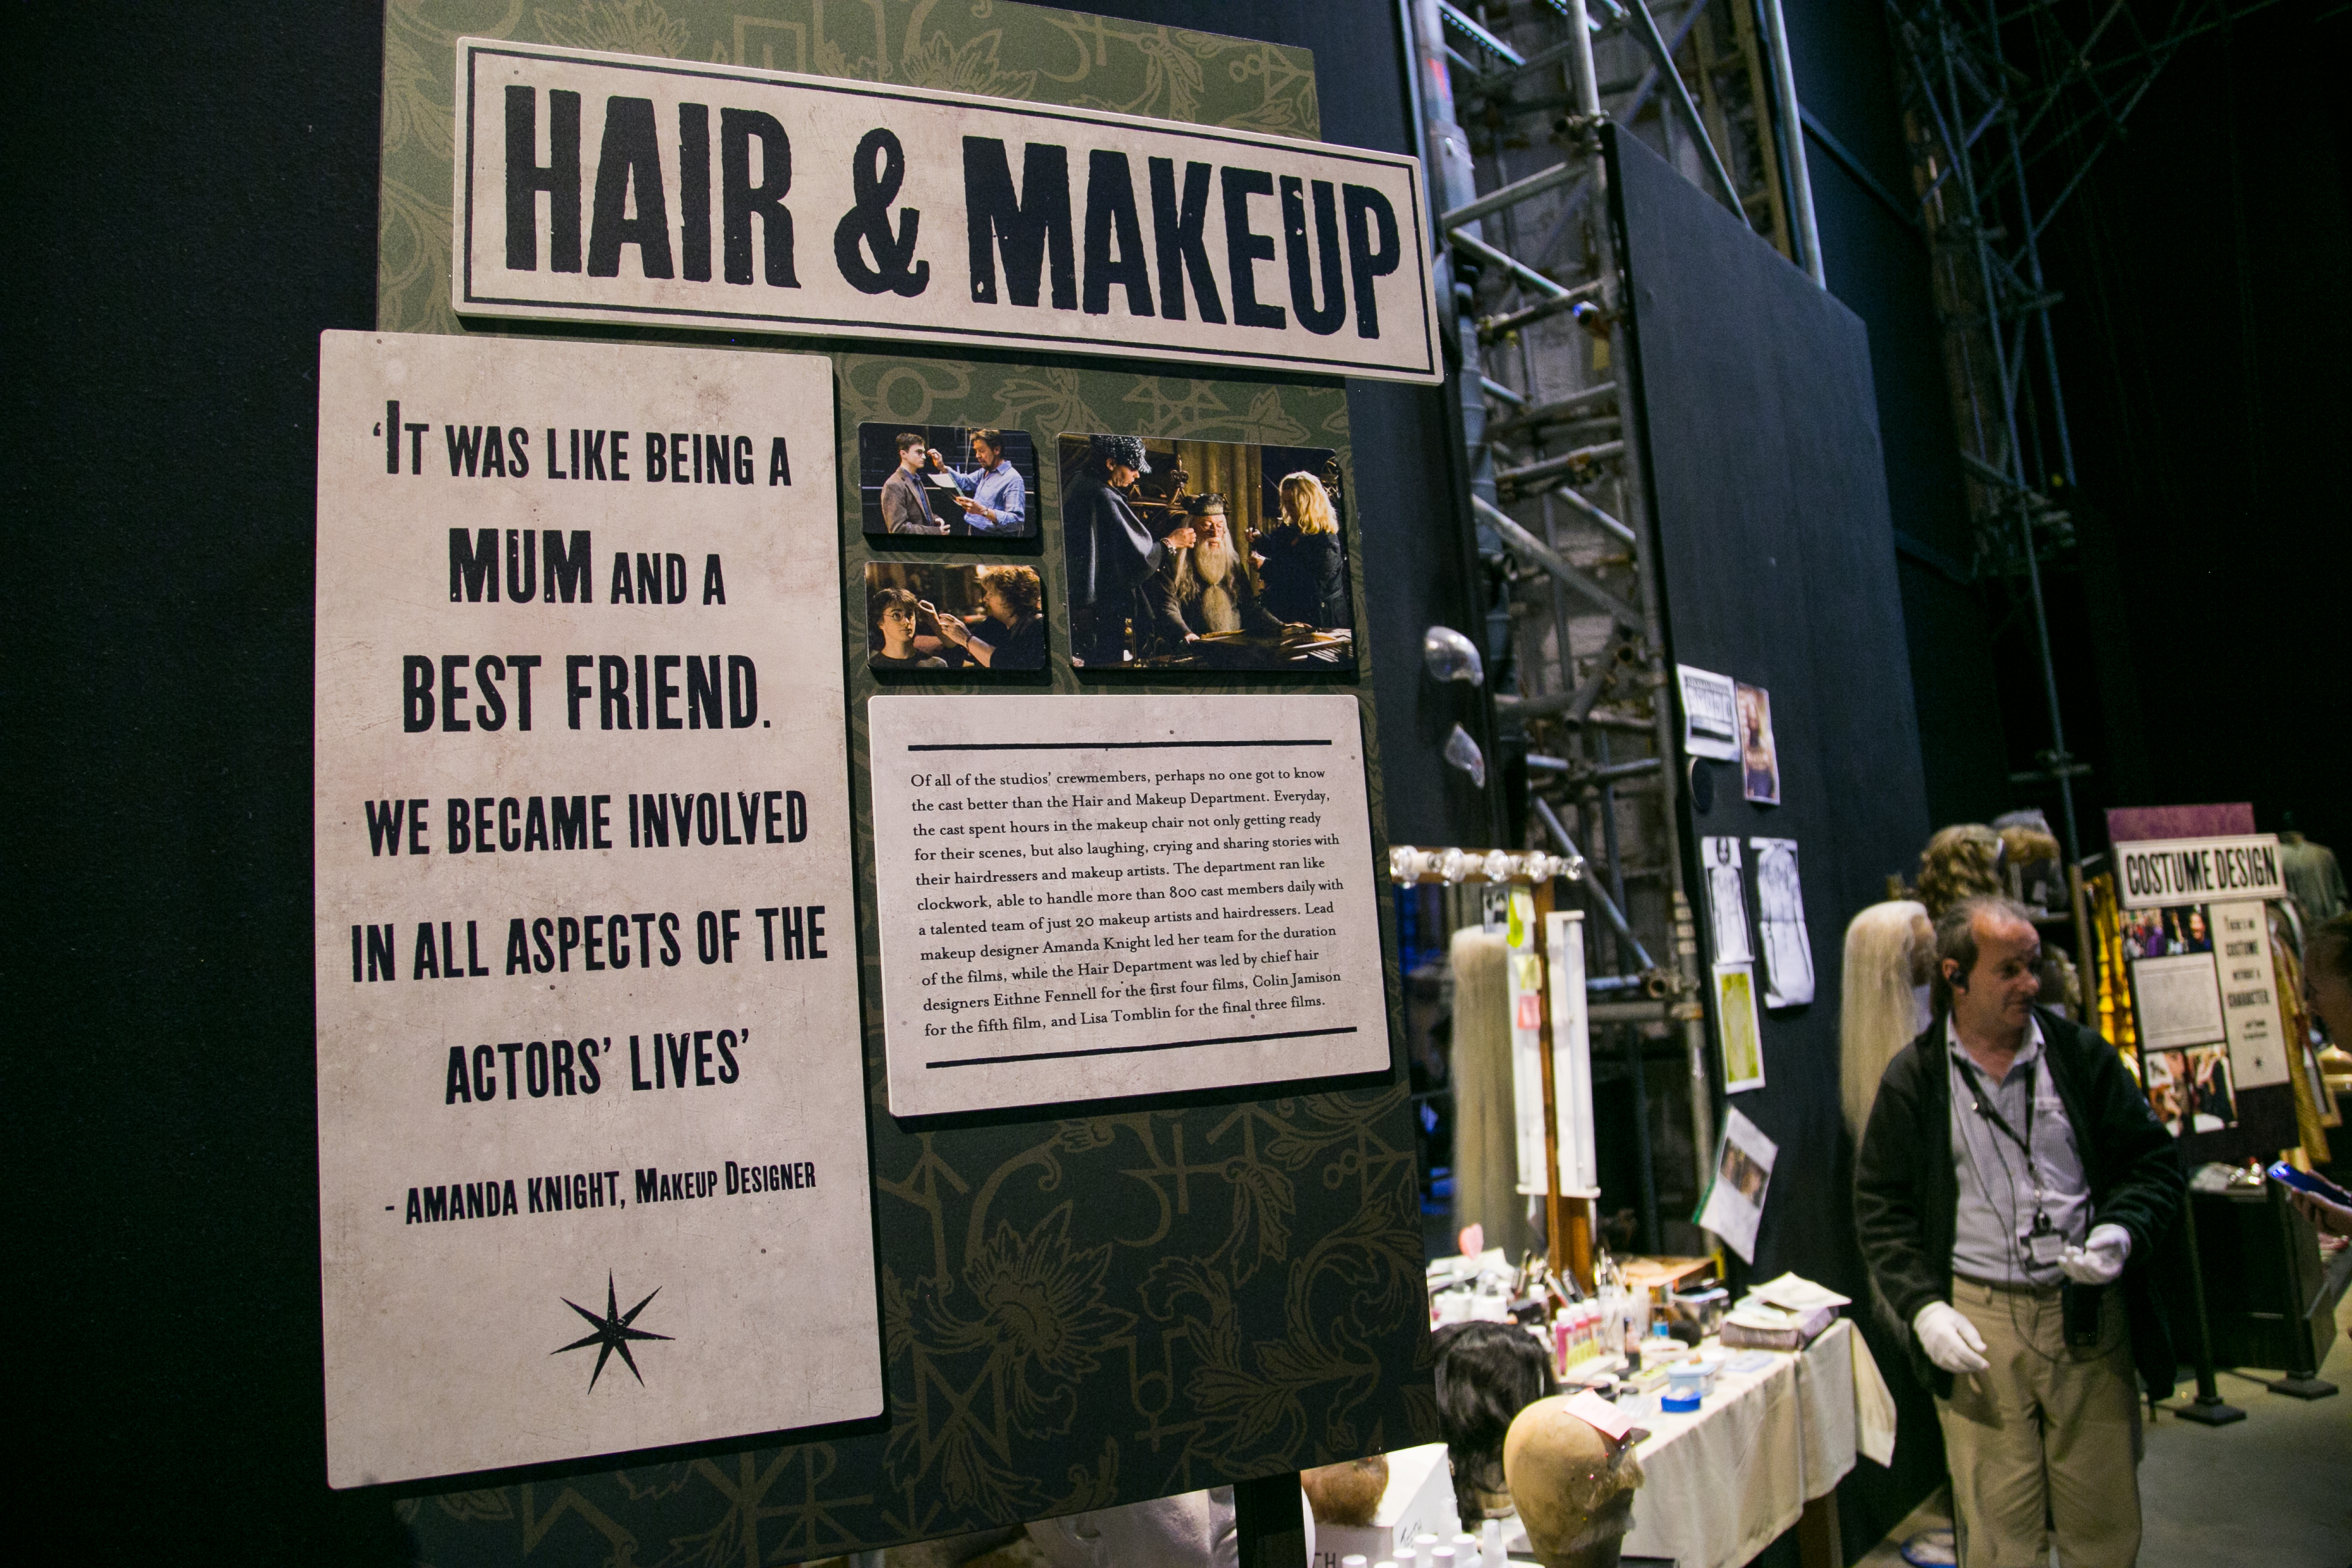 harry-potter-studio-tour-hair-makeup-1